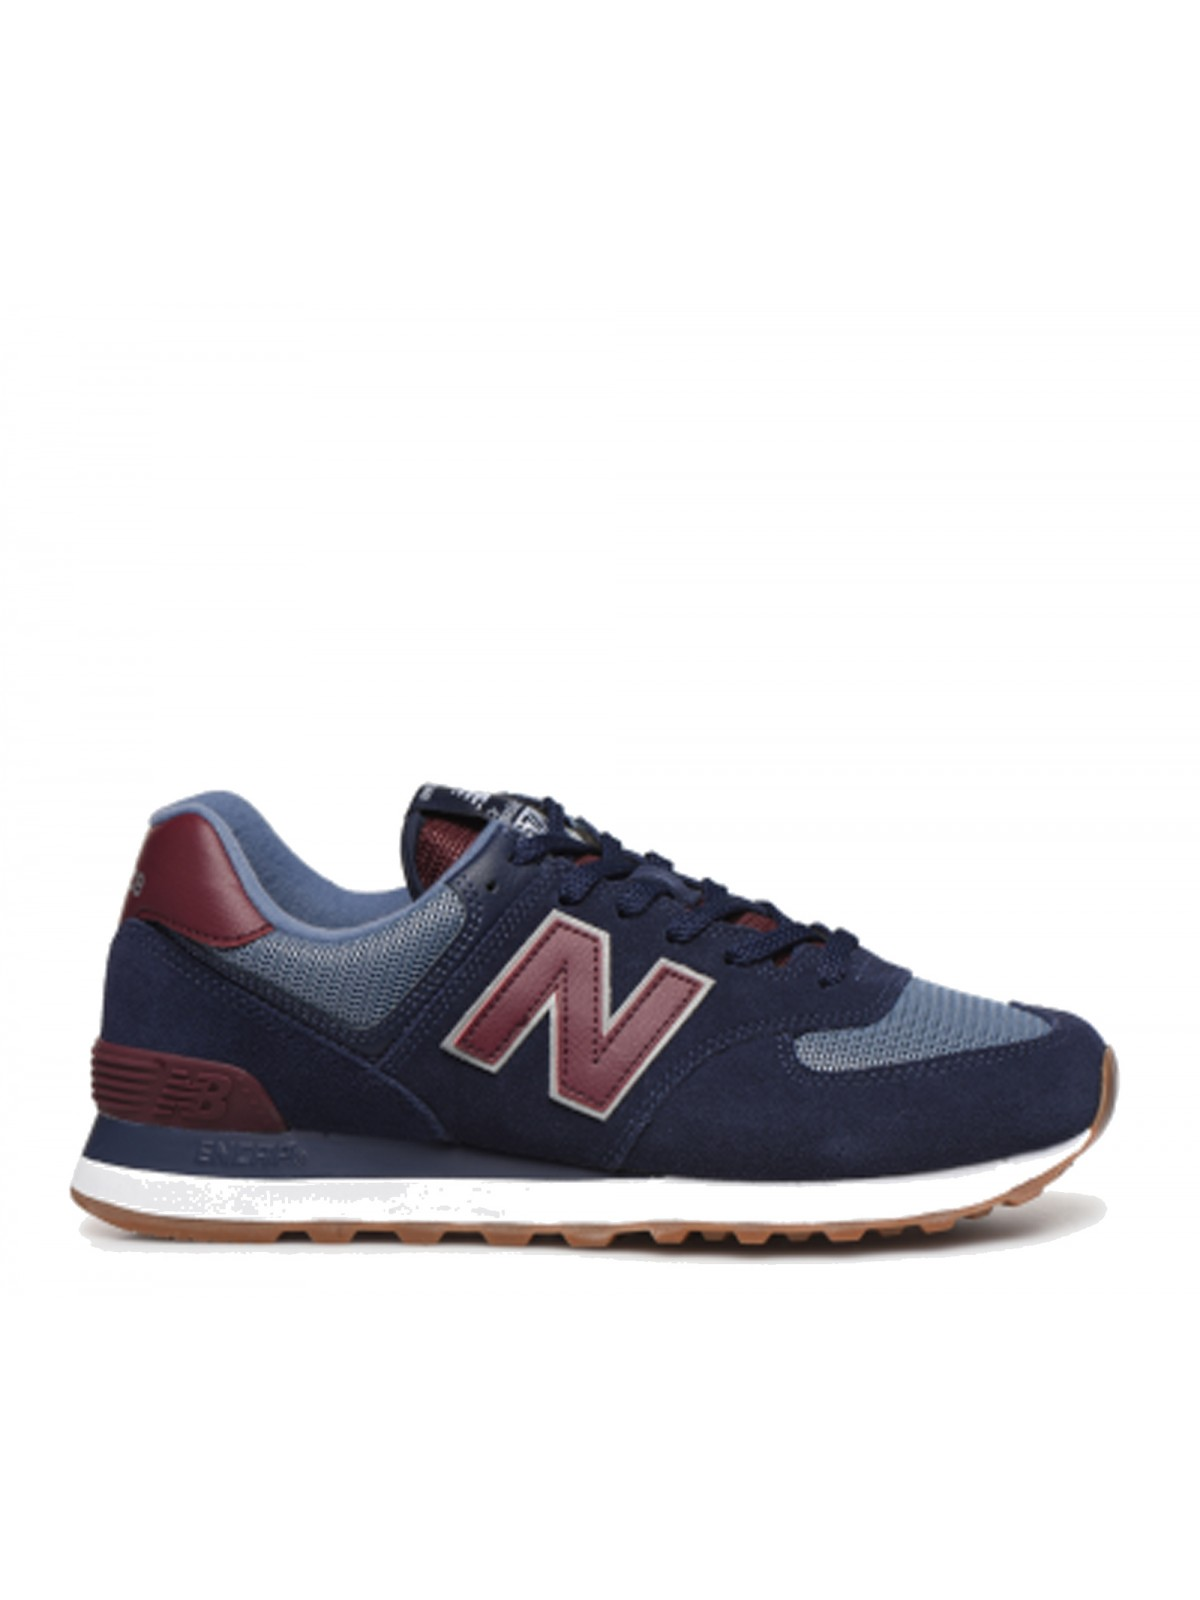 New Balance ML574 navy / red